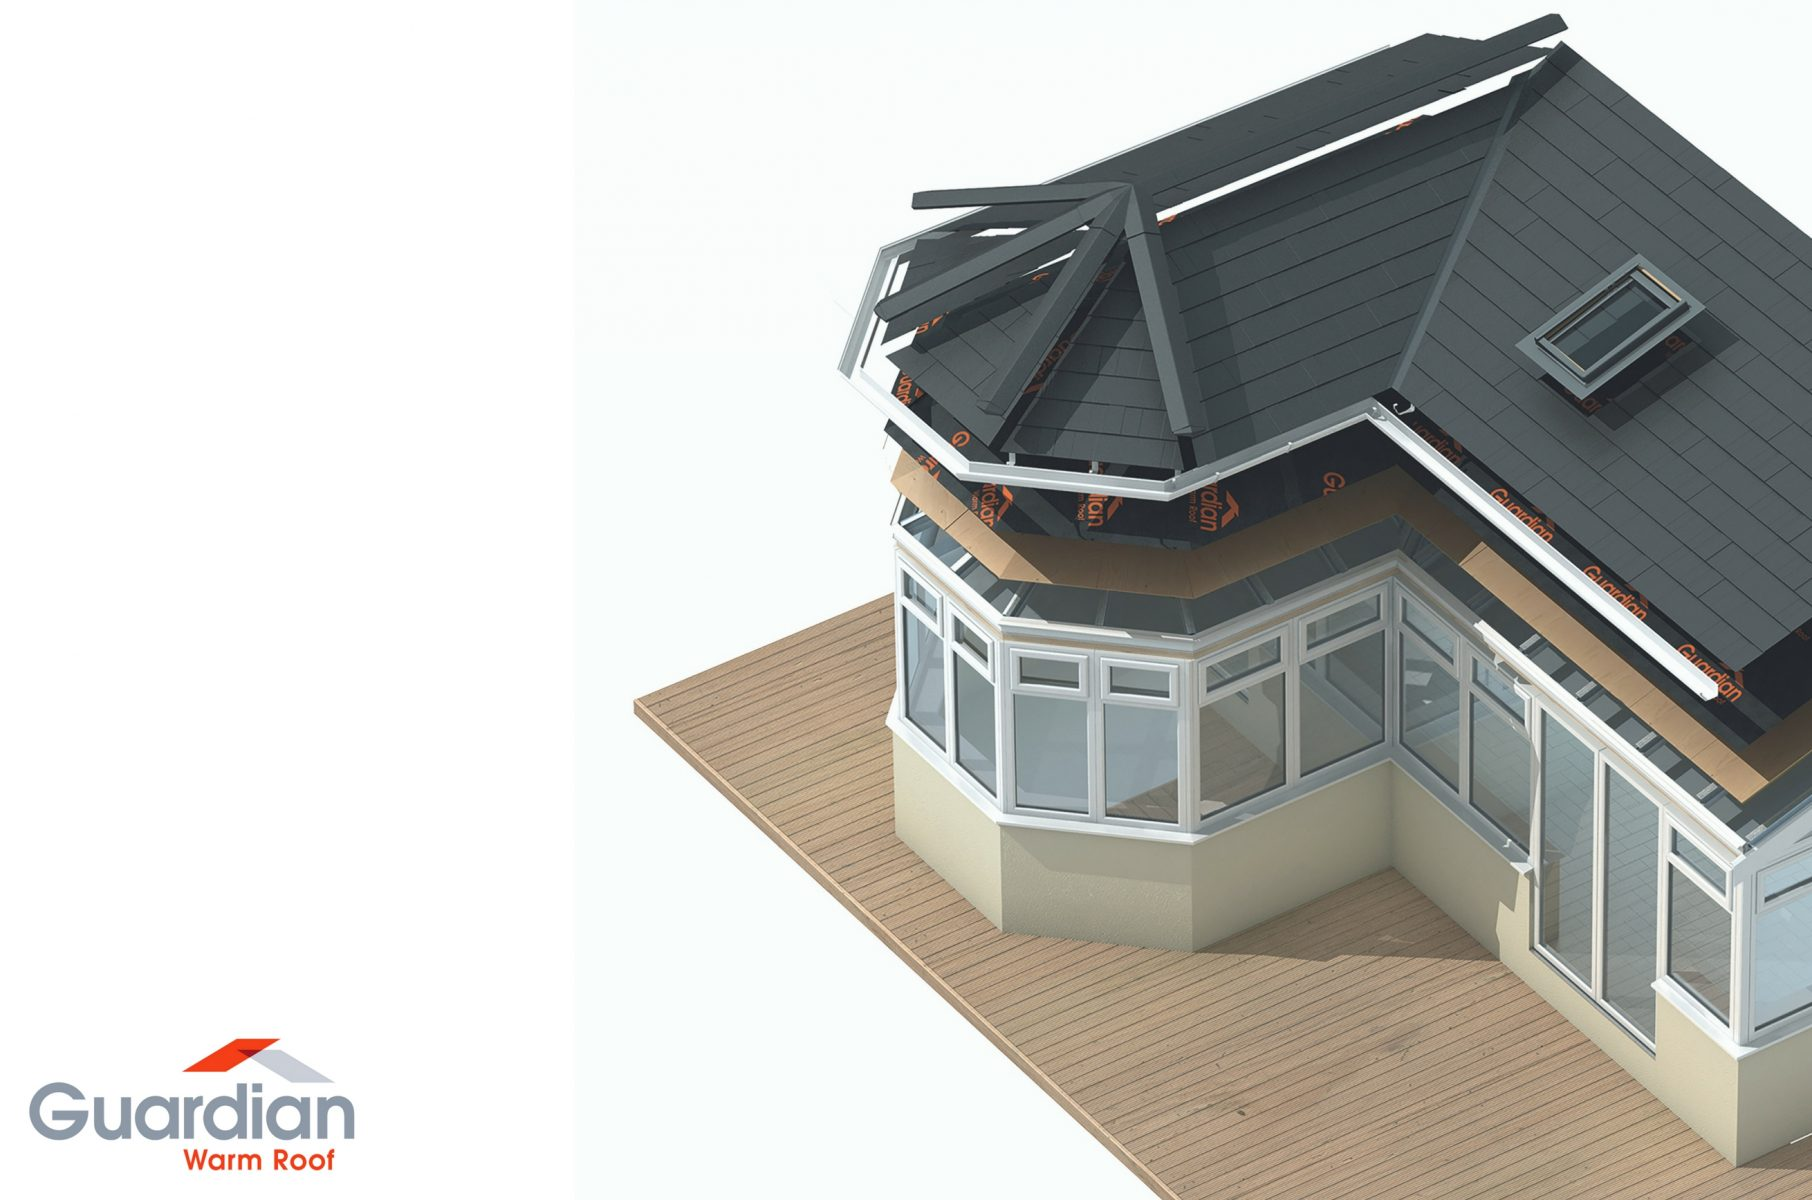 Solid Conservatory Roofs Guardian Warm Roof Tiled